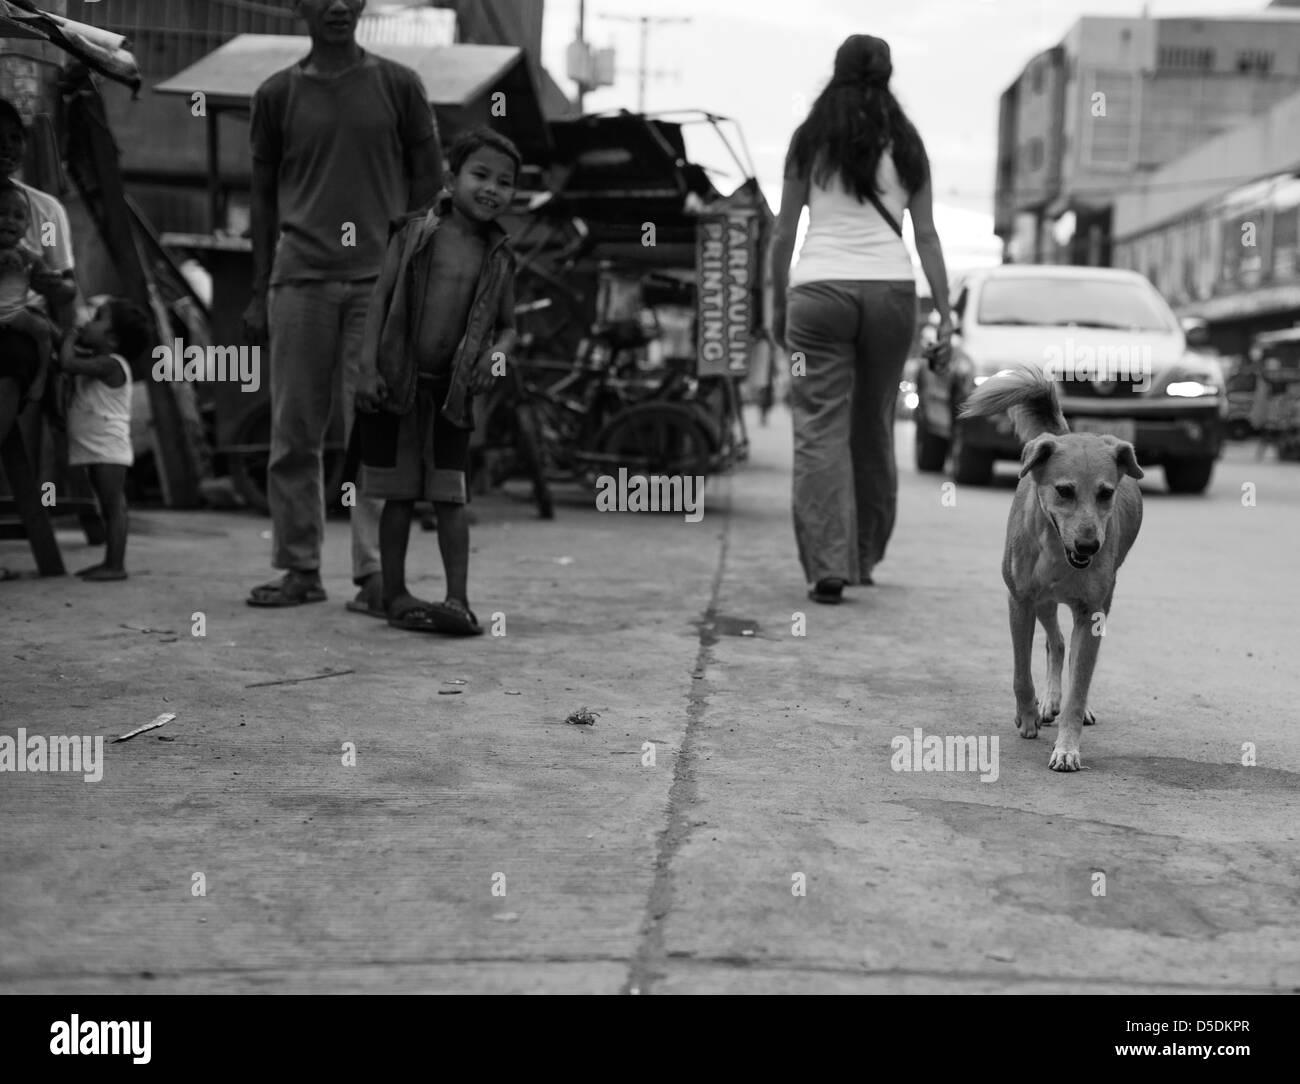 Stray dog walking down the street on Cagayan de Oro, Philippines - Stock Image